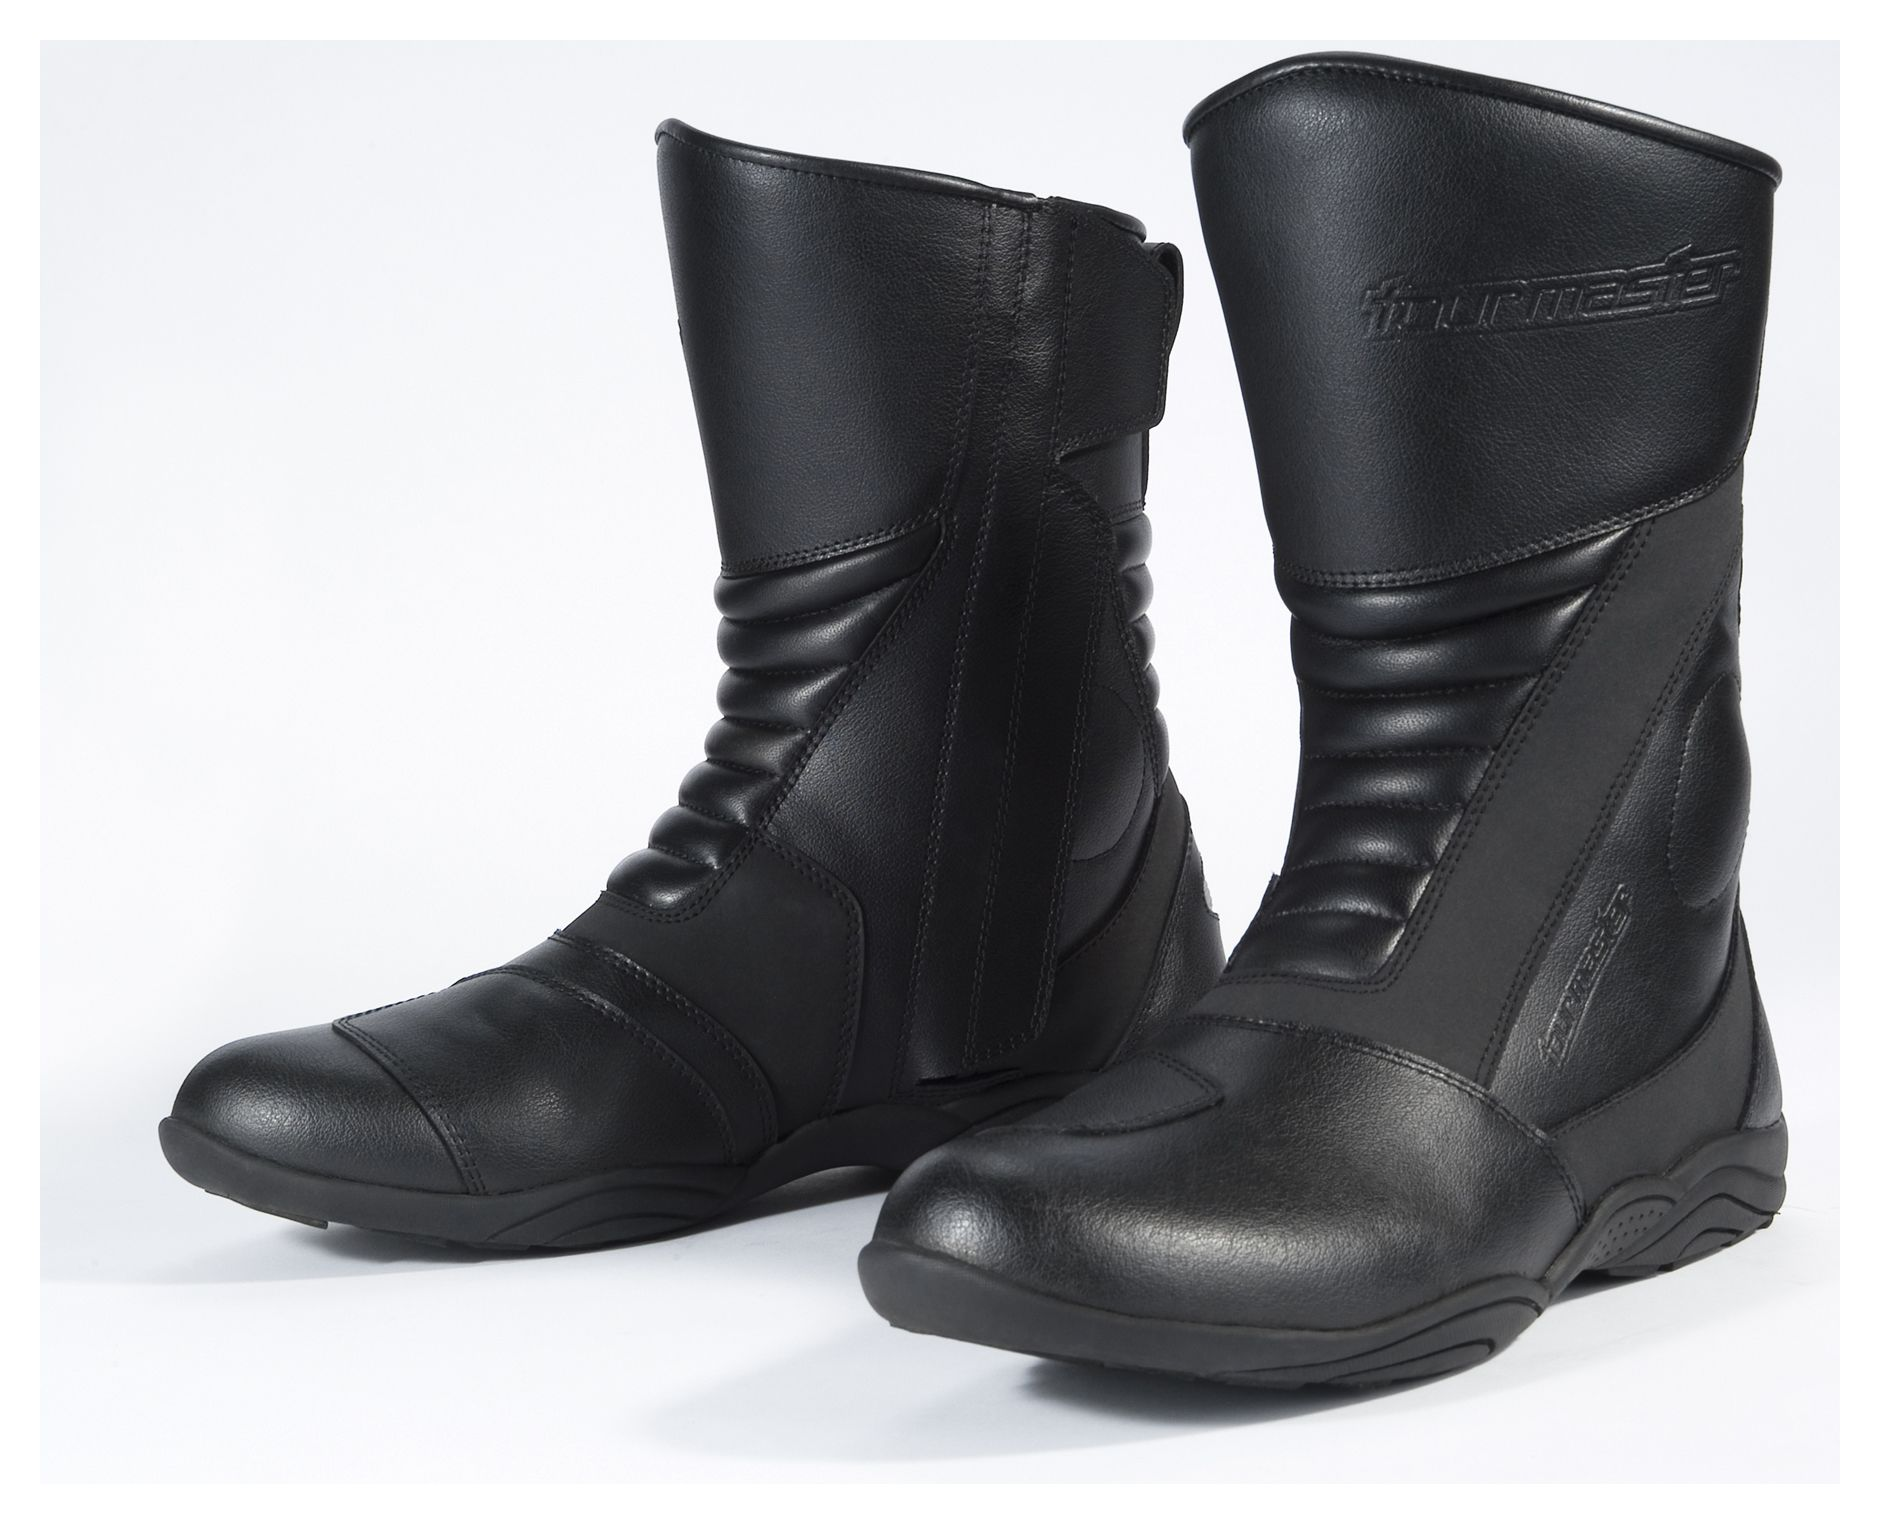 Tour Master Solution 2 Boots